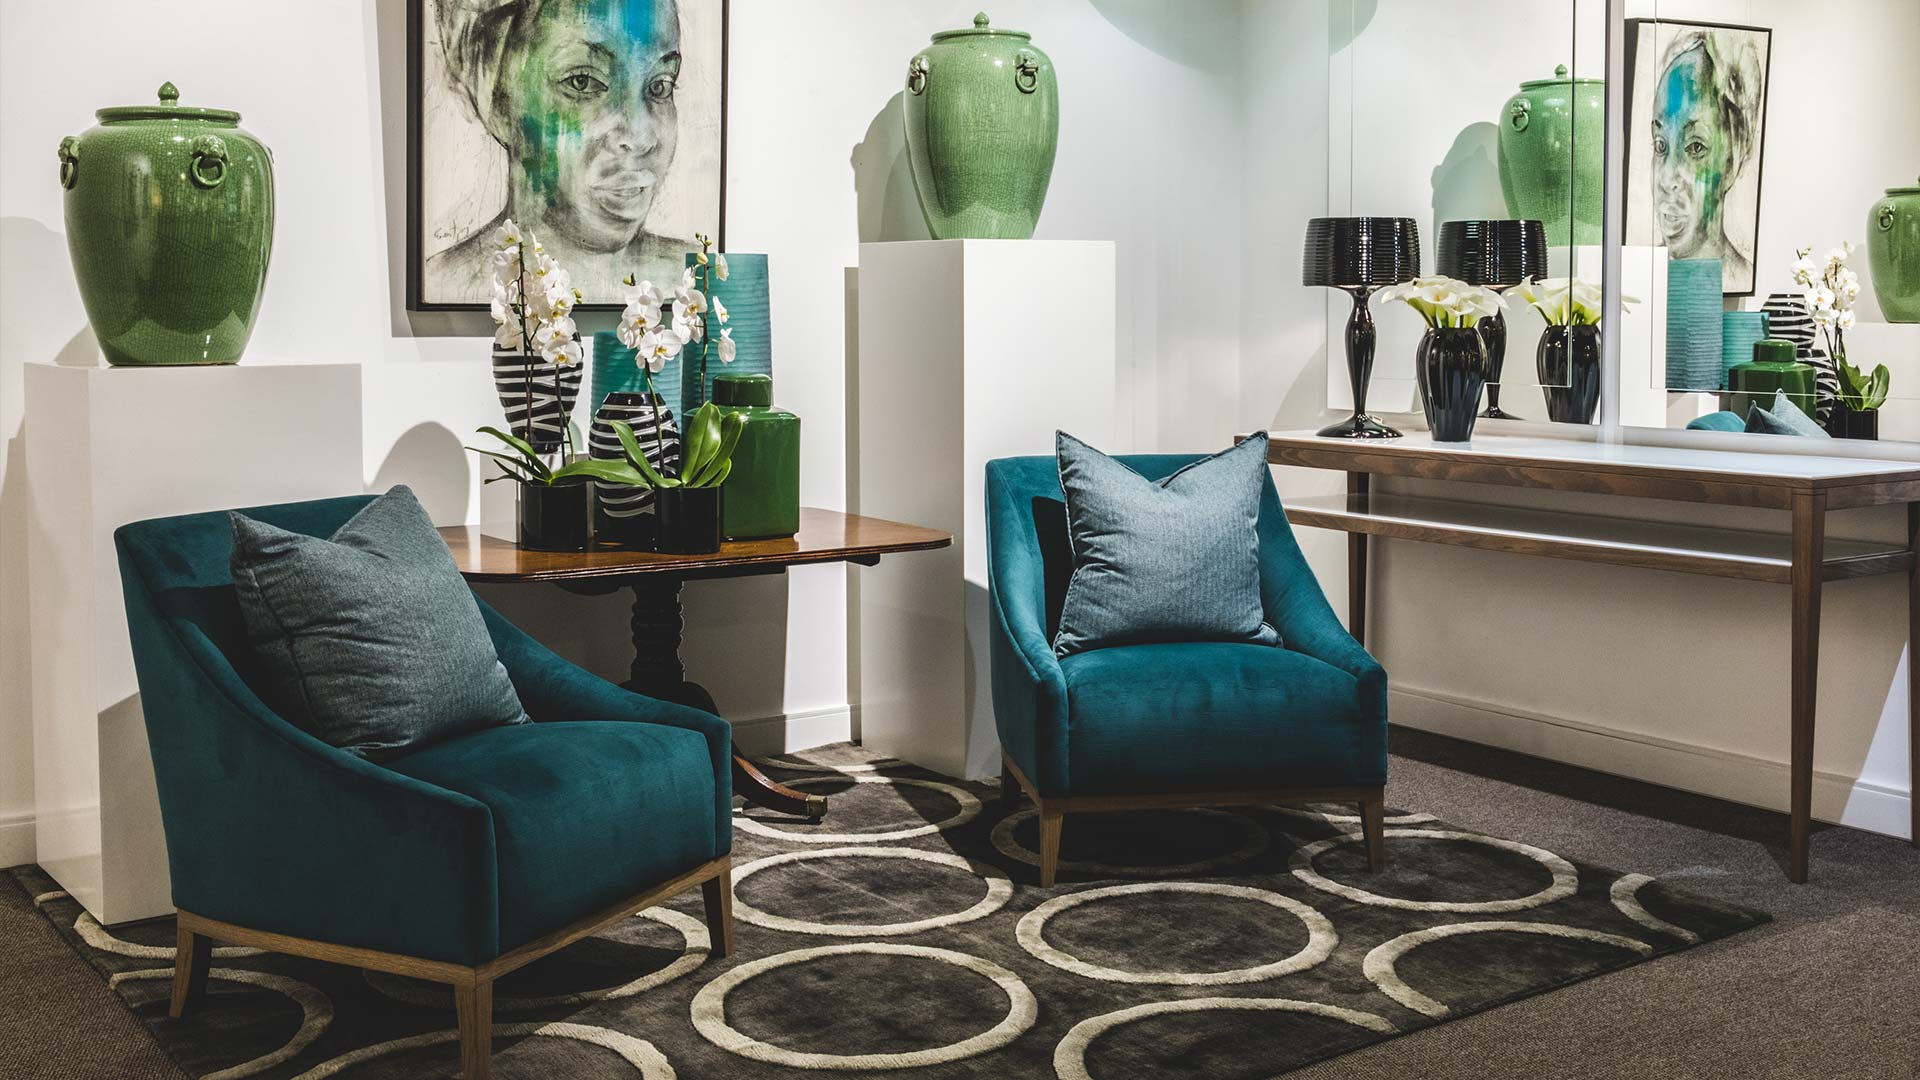 An exhibition with a difference at Head Interiors